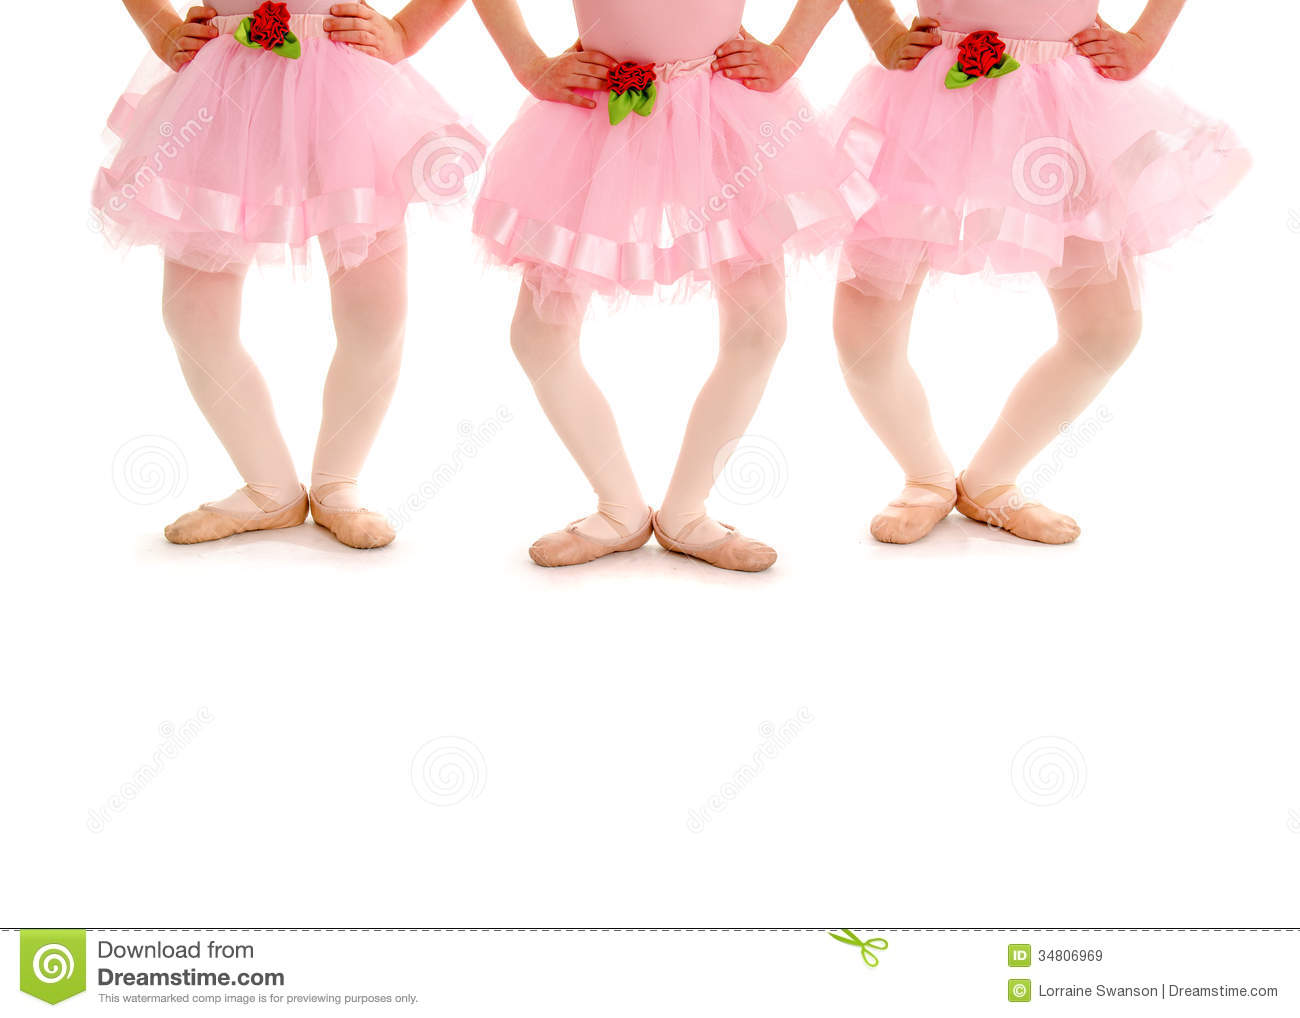 ... small girls in Ballet Recital Costume and Slippers practice Demi Plie